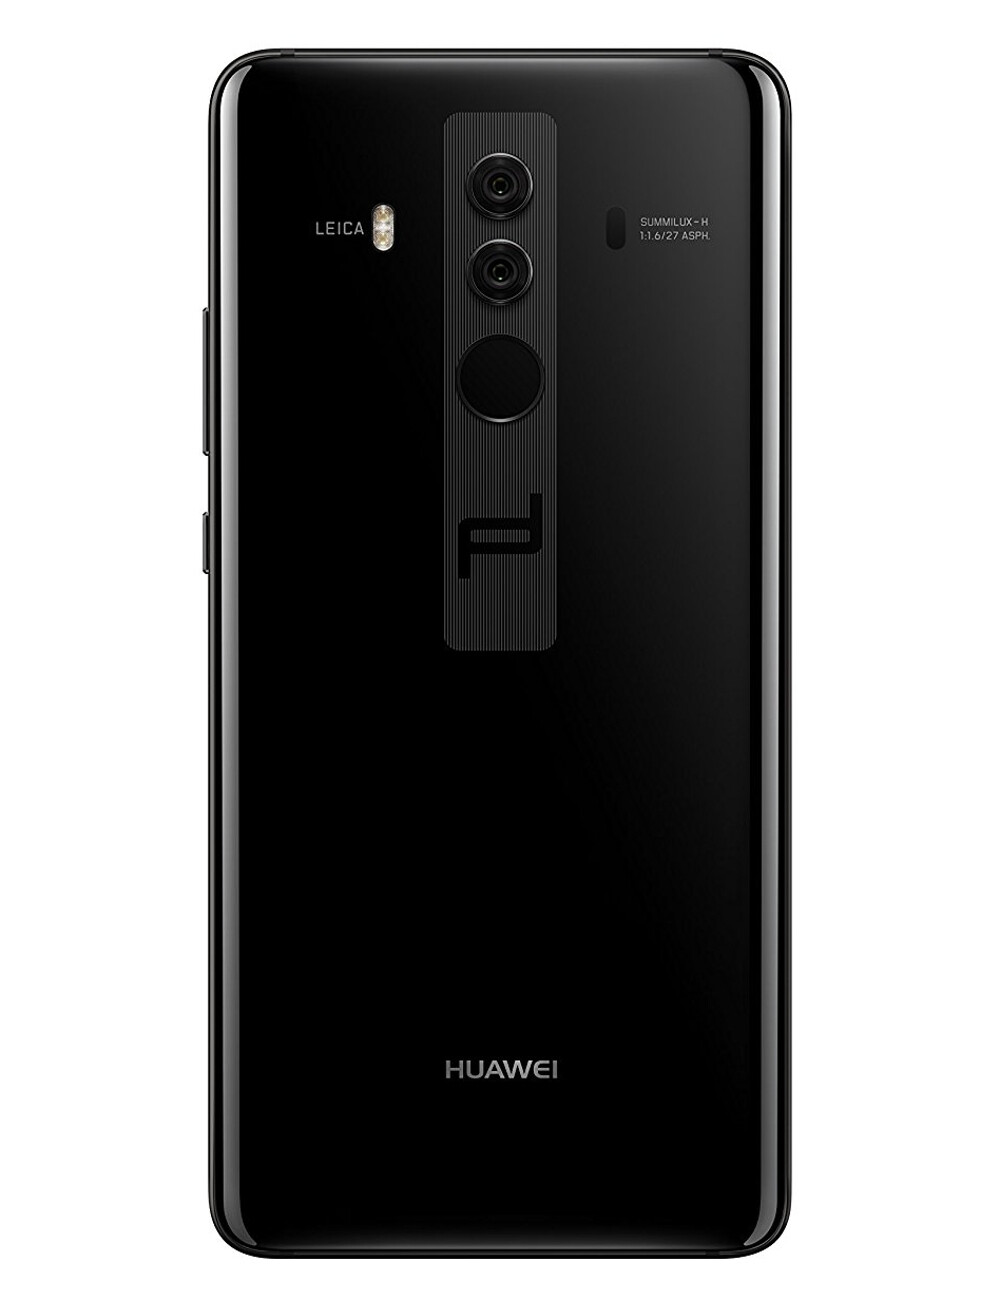 huawei mate 10 porsche design specs. Black Bedroom Furniture Sets. Home Design Ideas